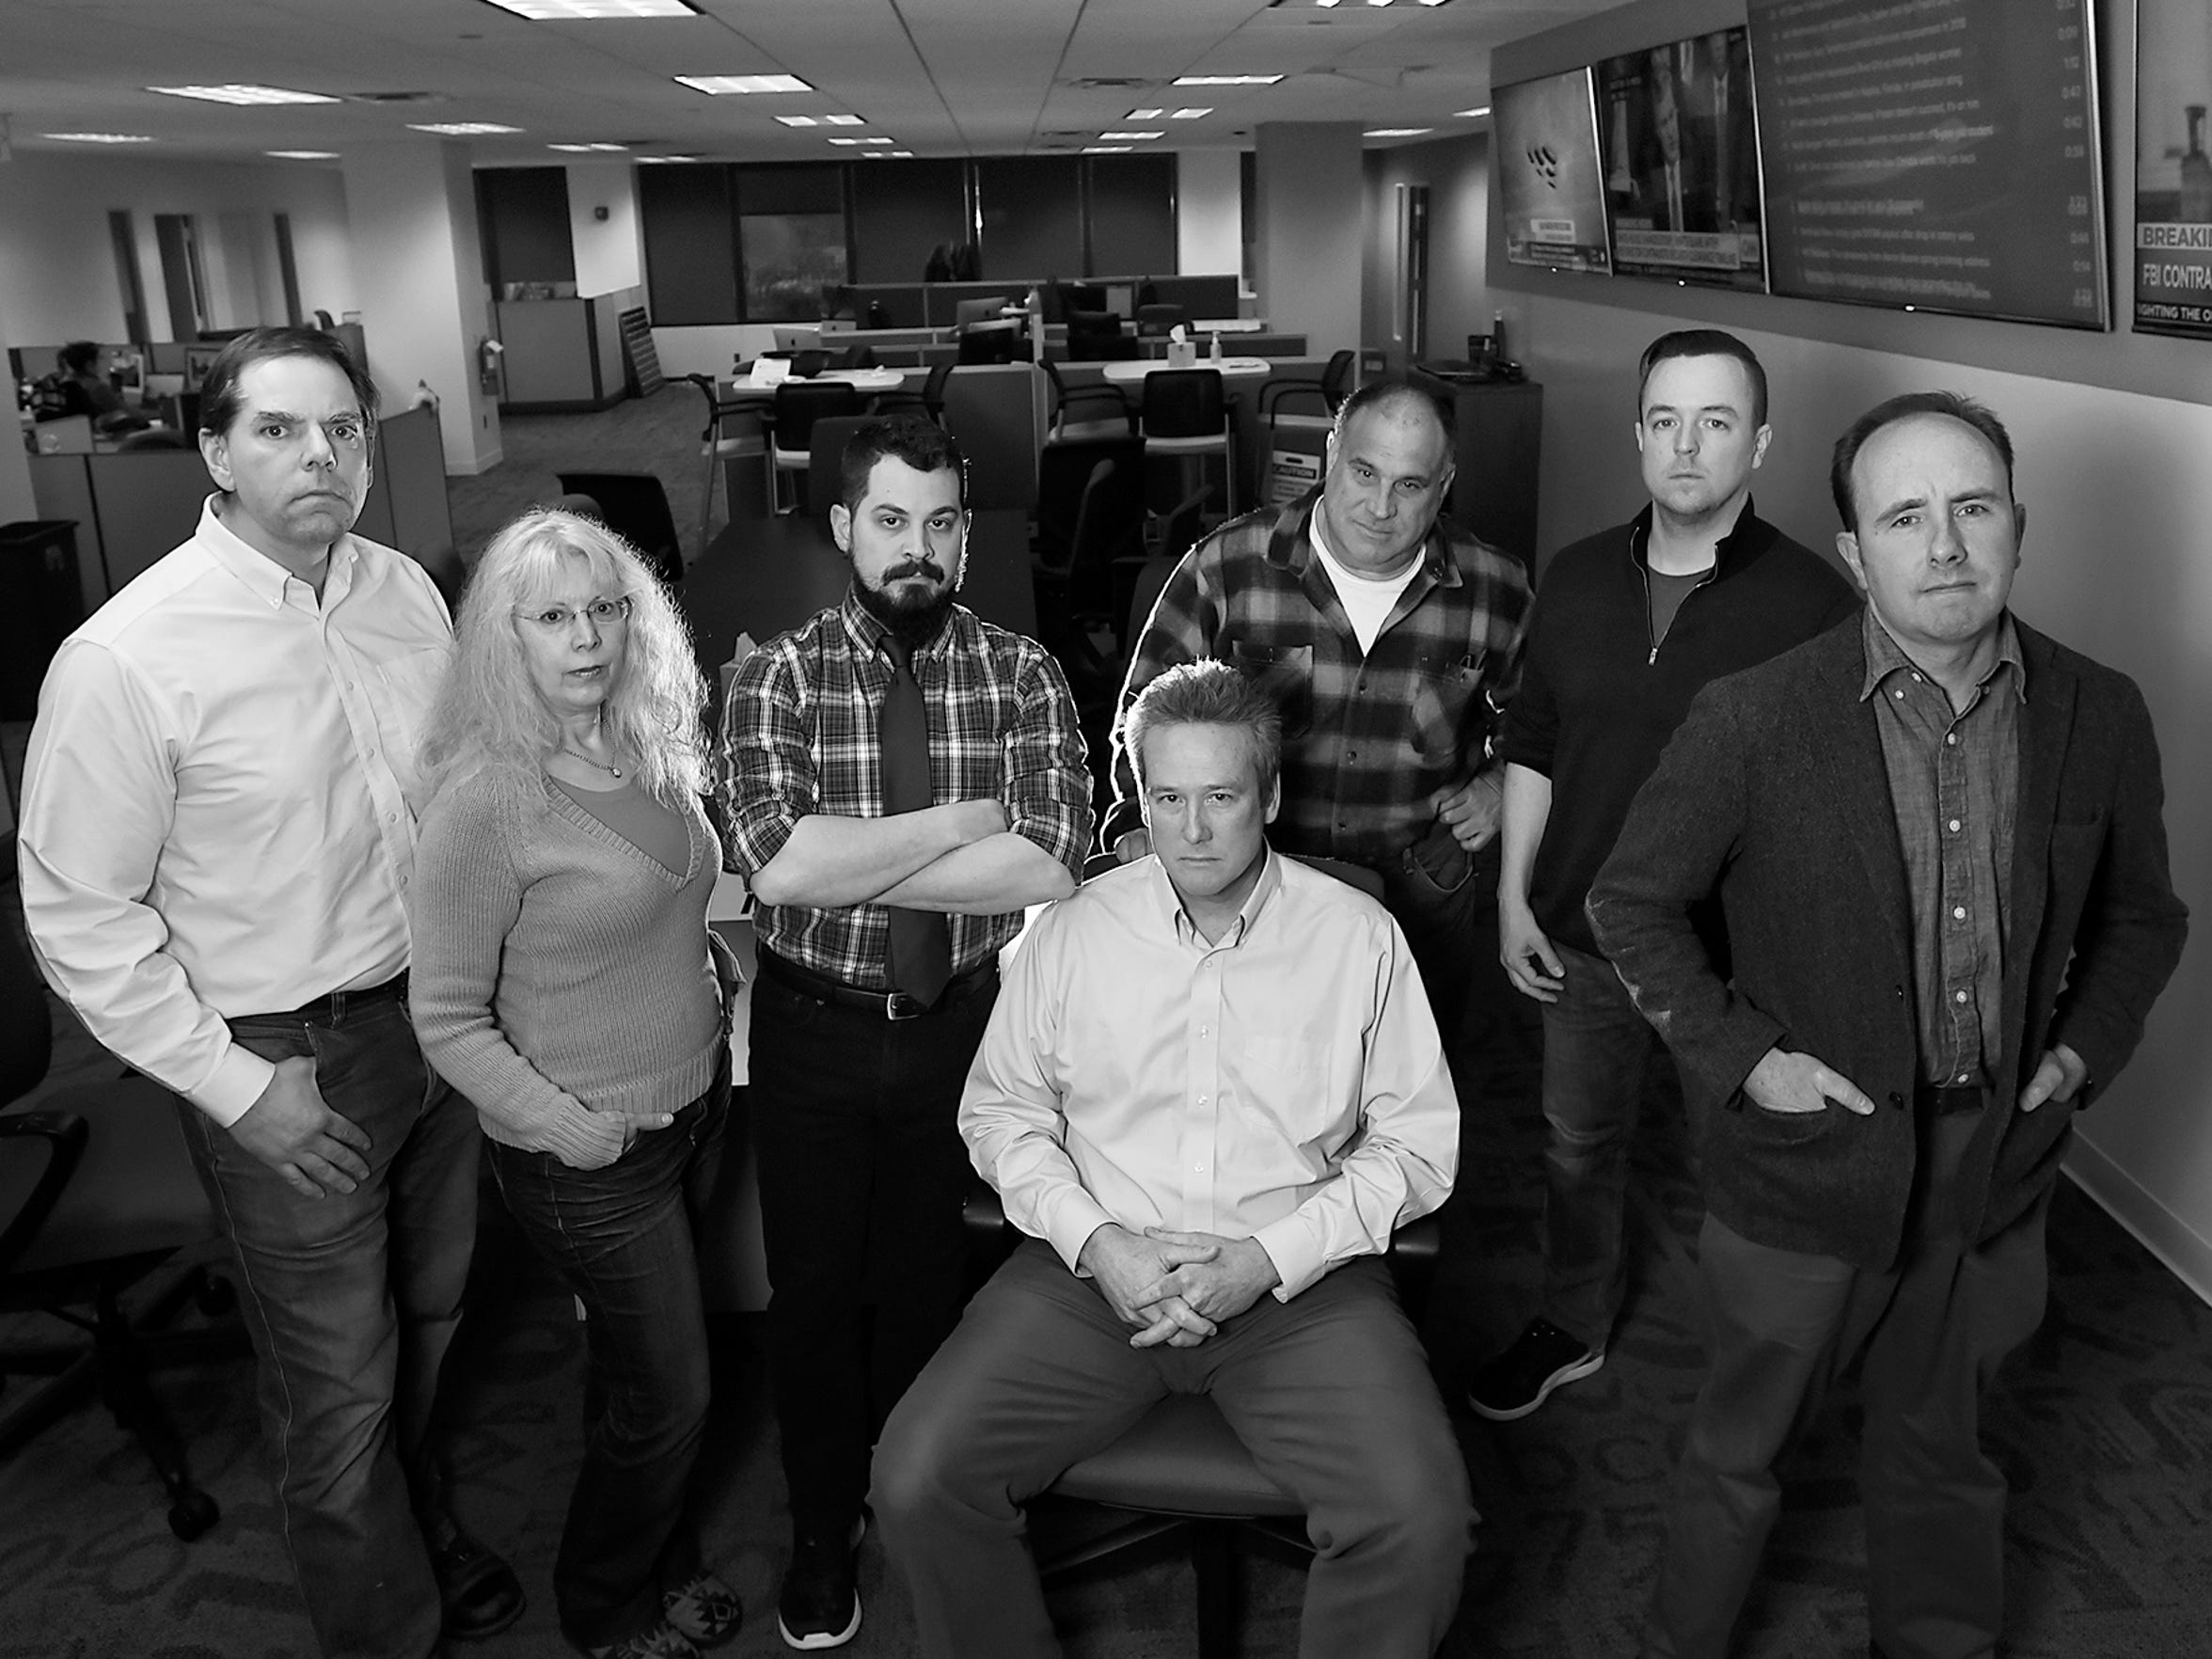 DuPont Team at The Record and NorthJersey.com at the Woodland Park office on Tuesday February 13, 2018. (From left) Daniel Sforza, Susan Lupow, Michael V. Pettigano, James M. O'Neill, Chris Pedota, Sean Oates and Scott Fallon.